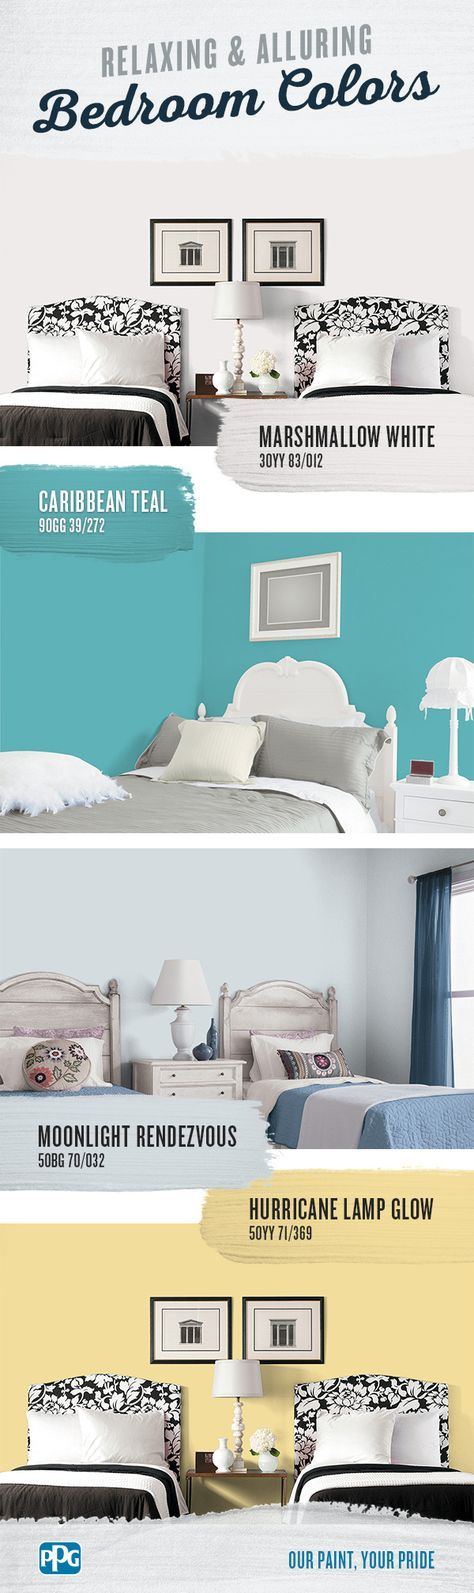 relaxing and alluring bedroom colors a good guide for bedroom rh pinterest com